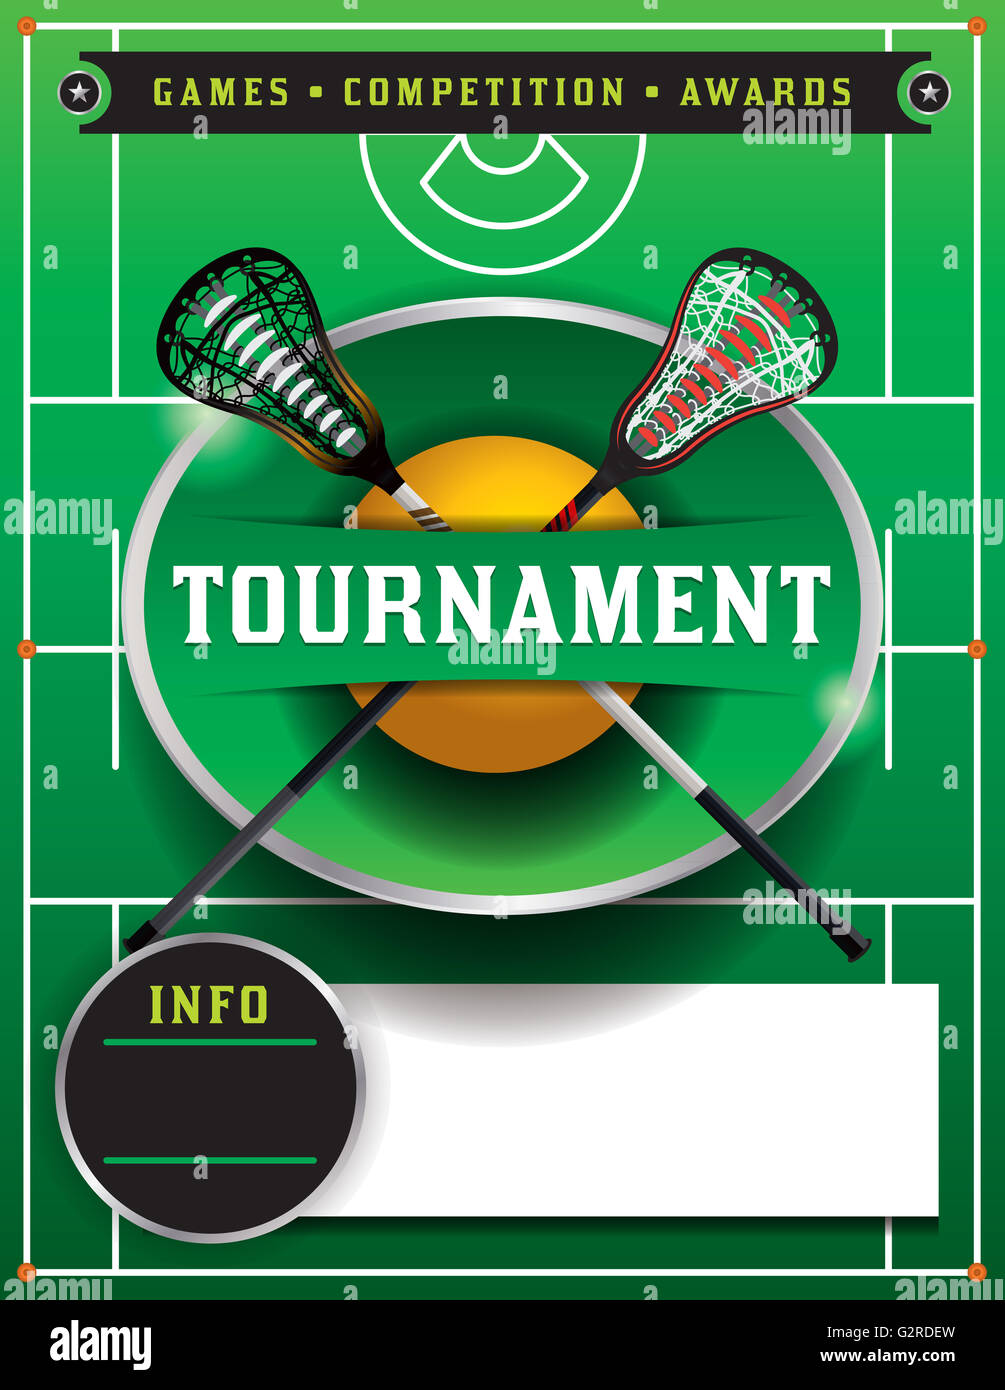 a lacrosse tournament flyer template stock photo 105007025 alamy